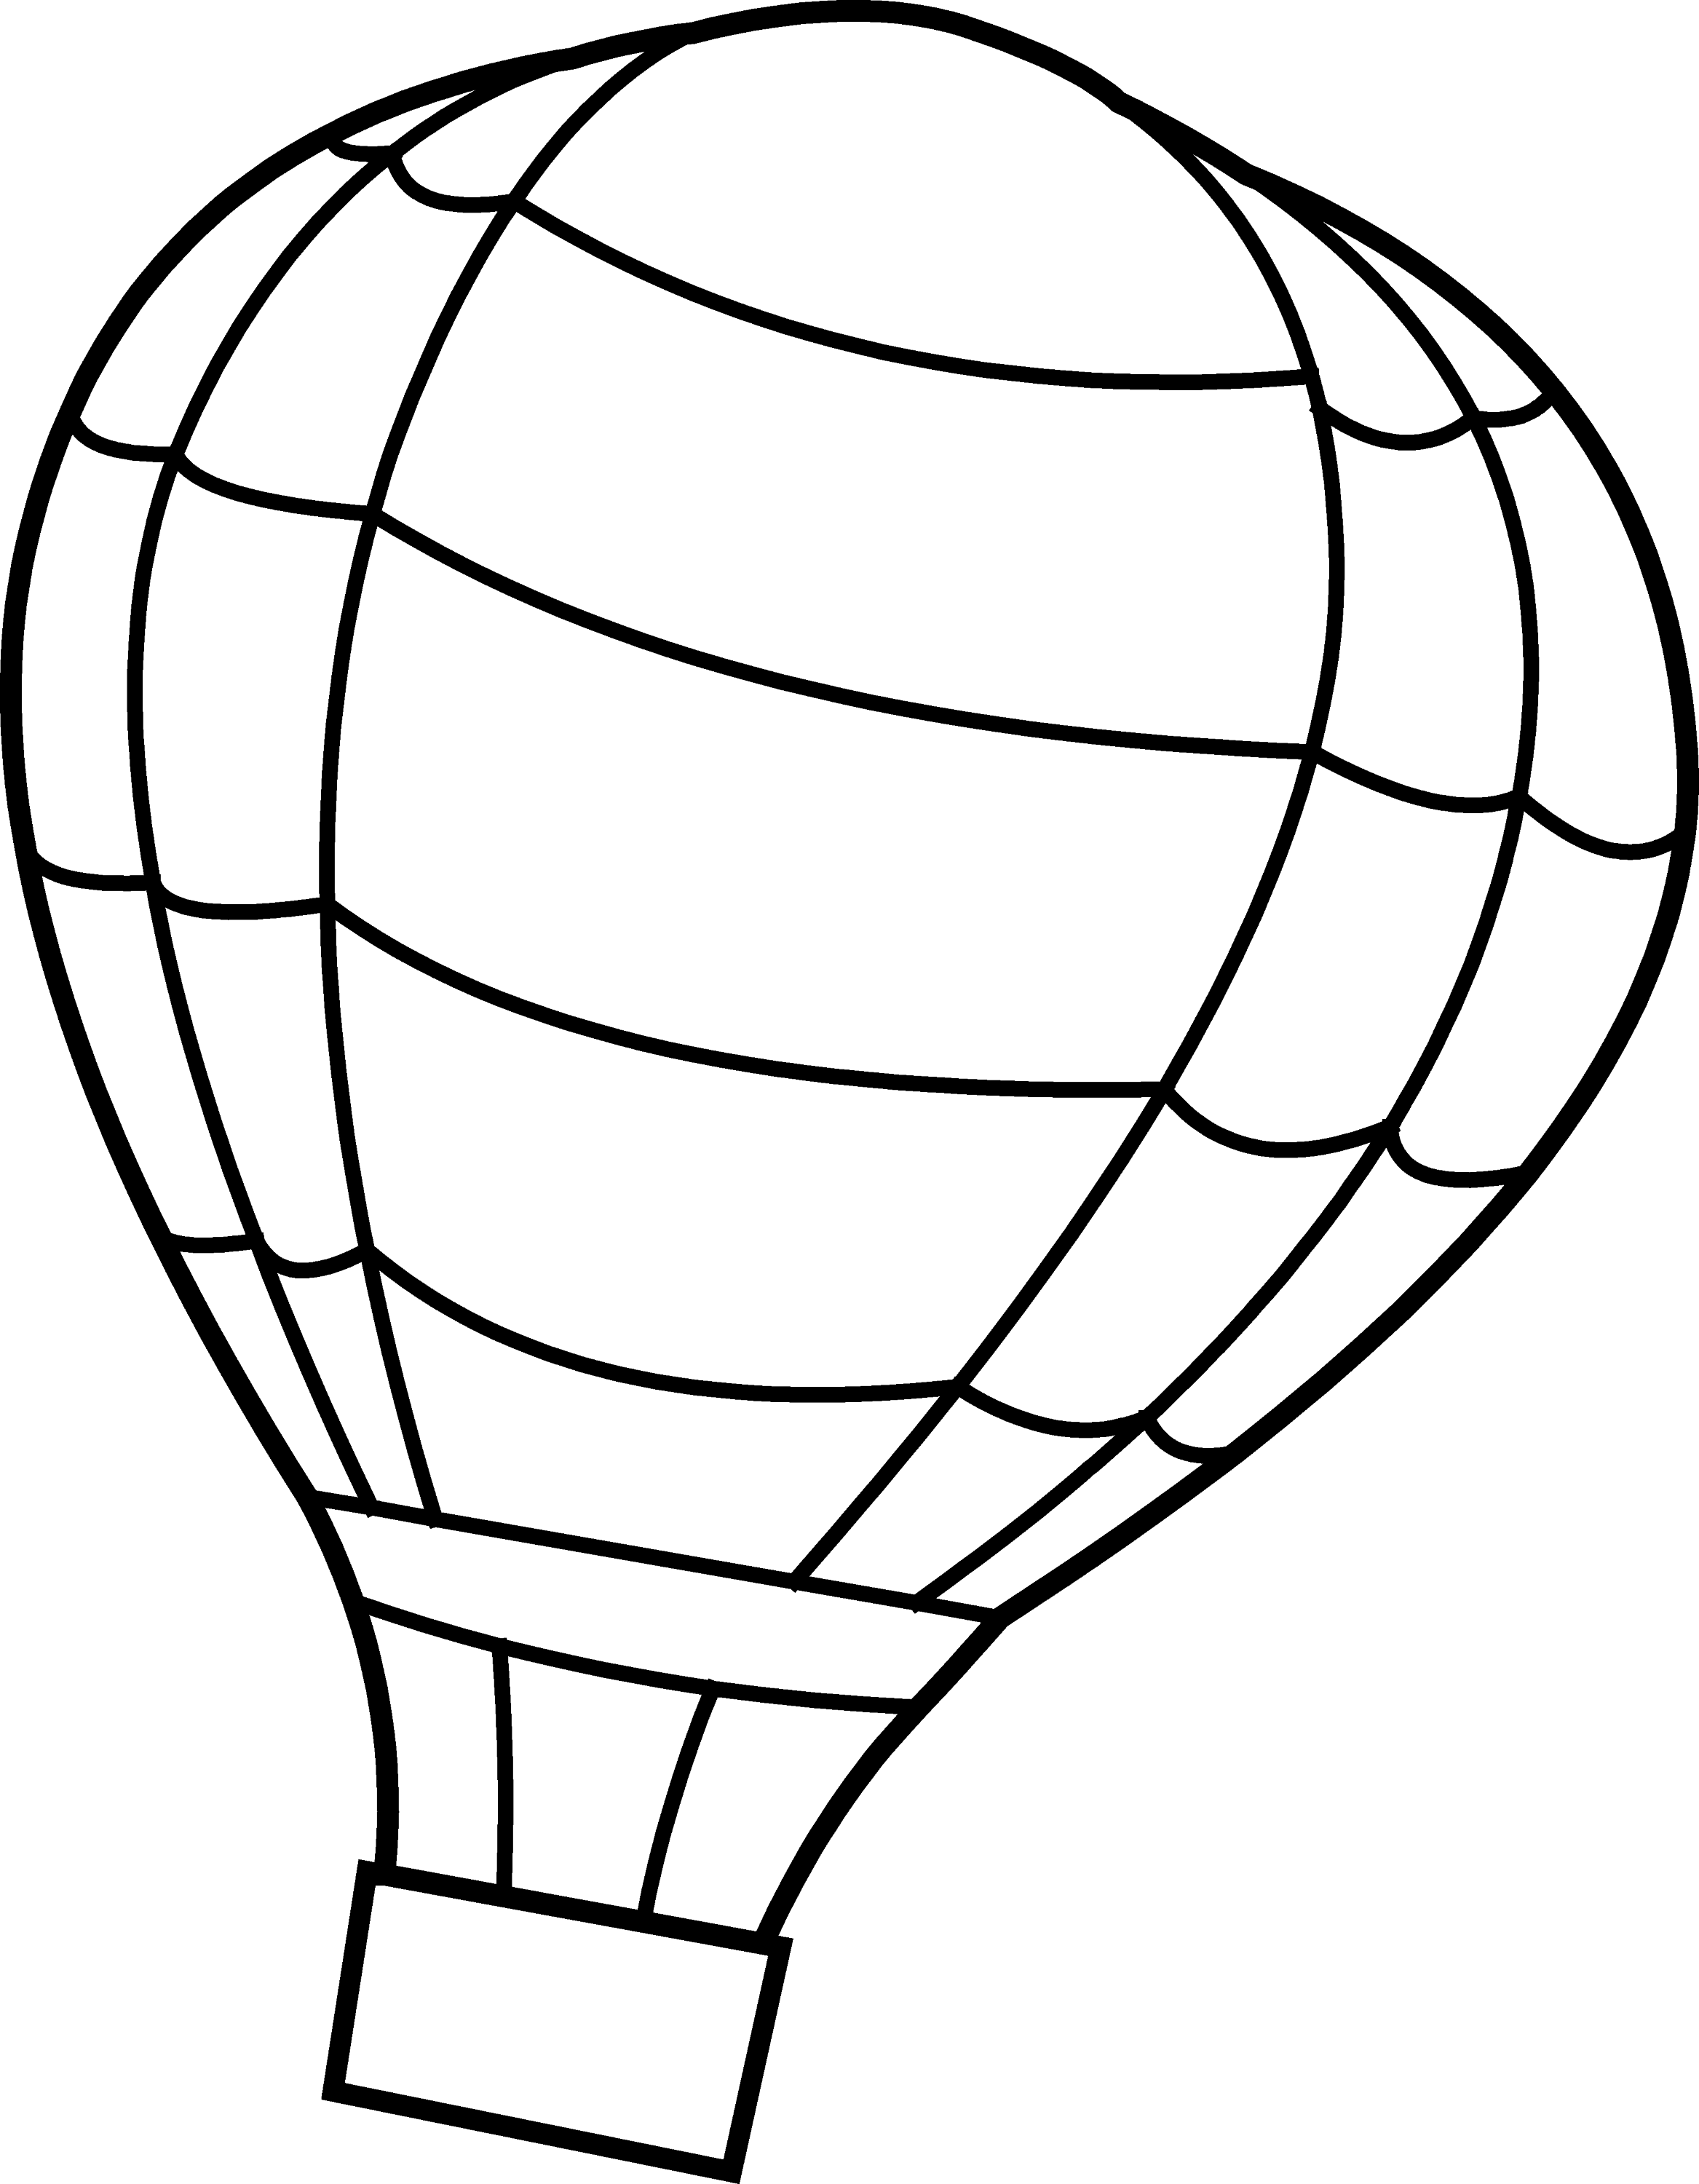 Hot Air Balloon Coloring Page - Free Clip Art